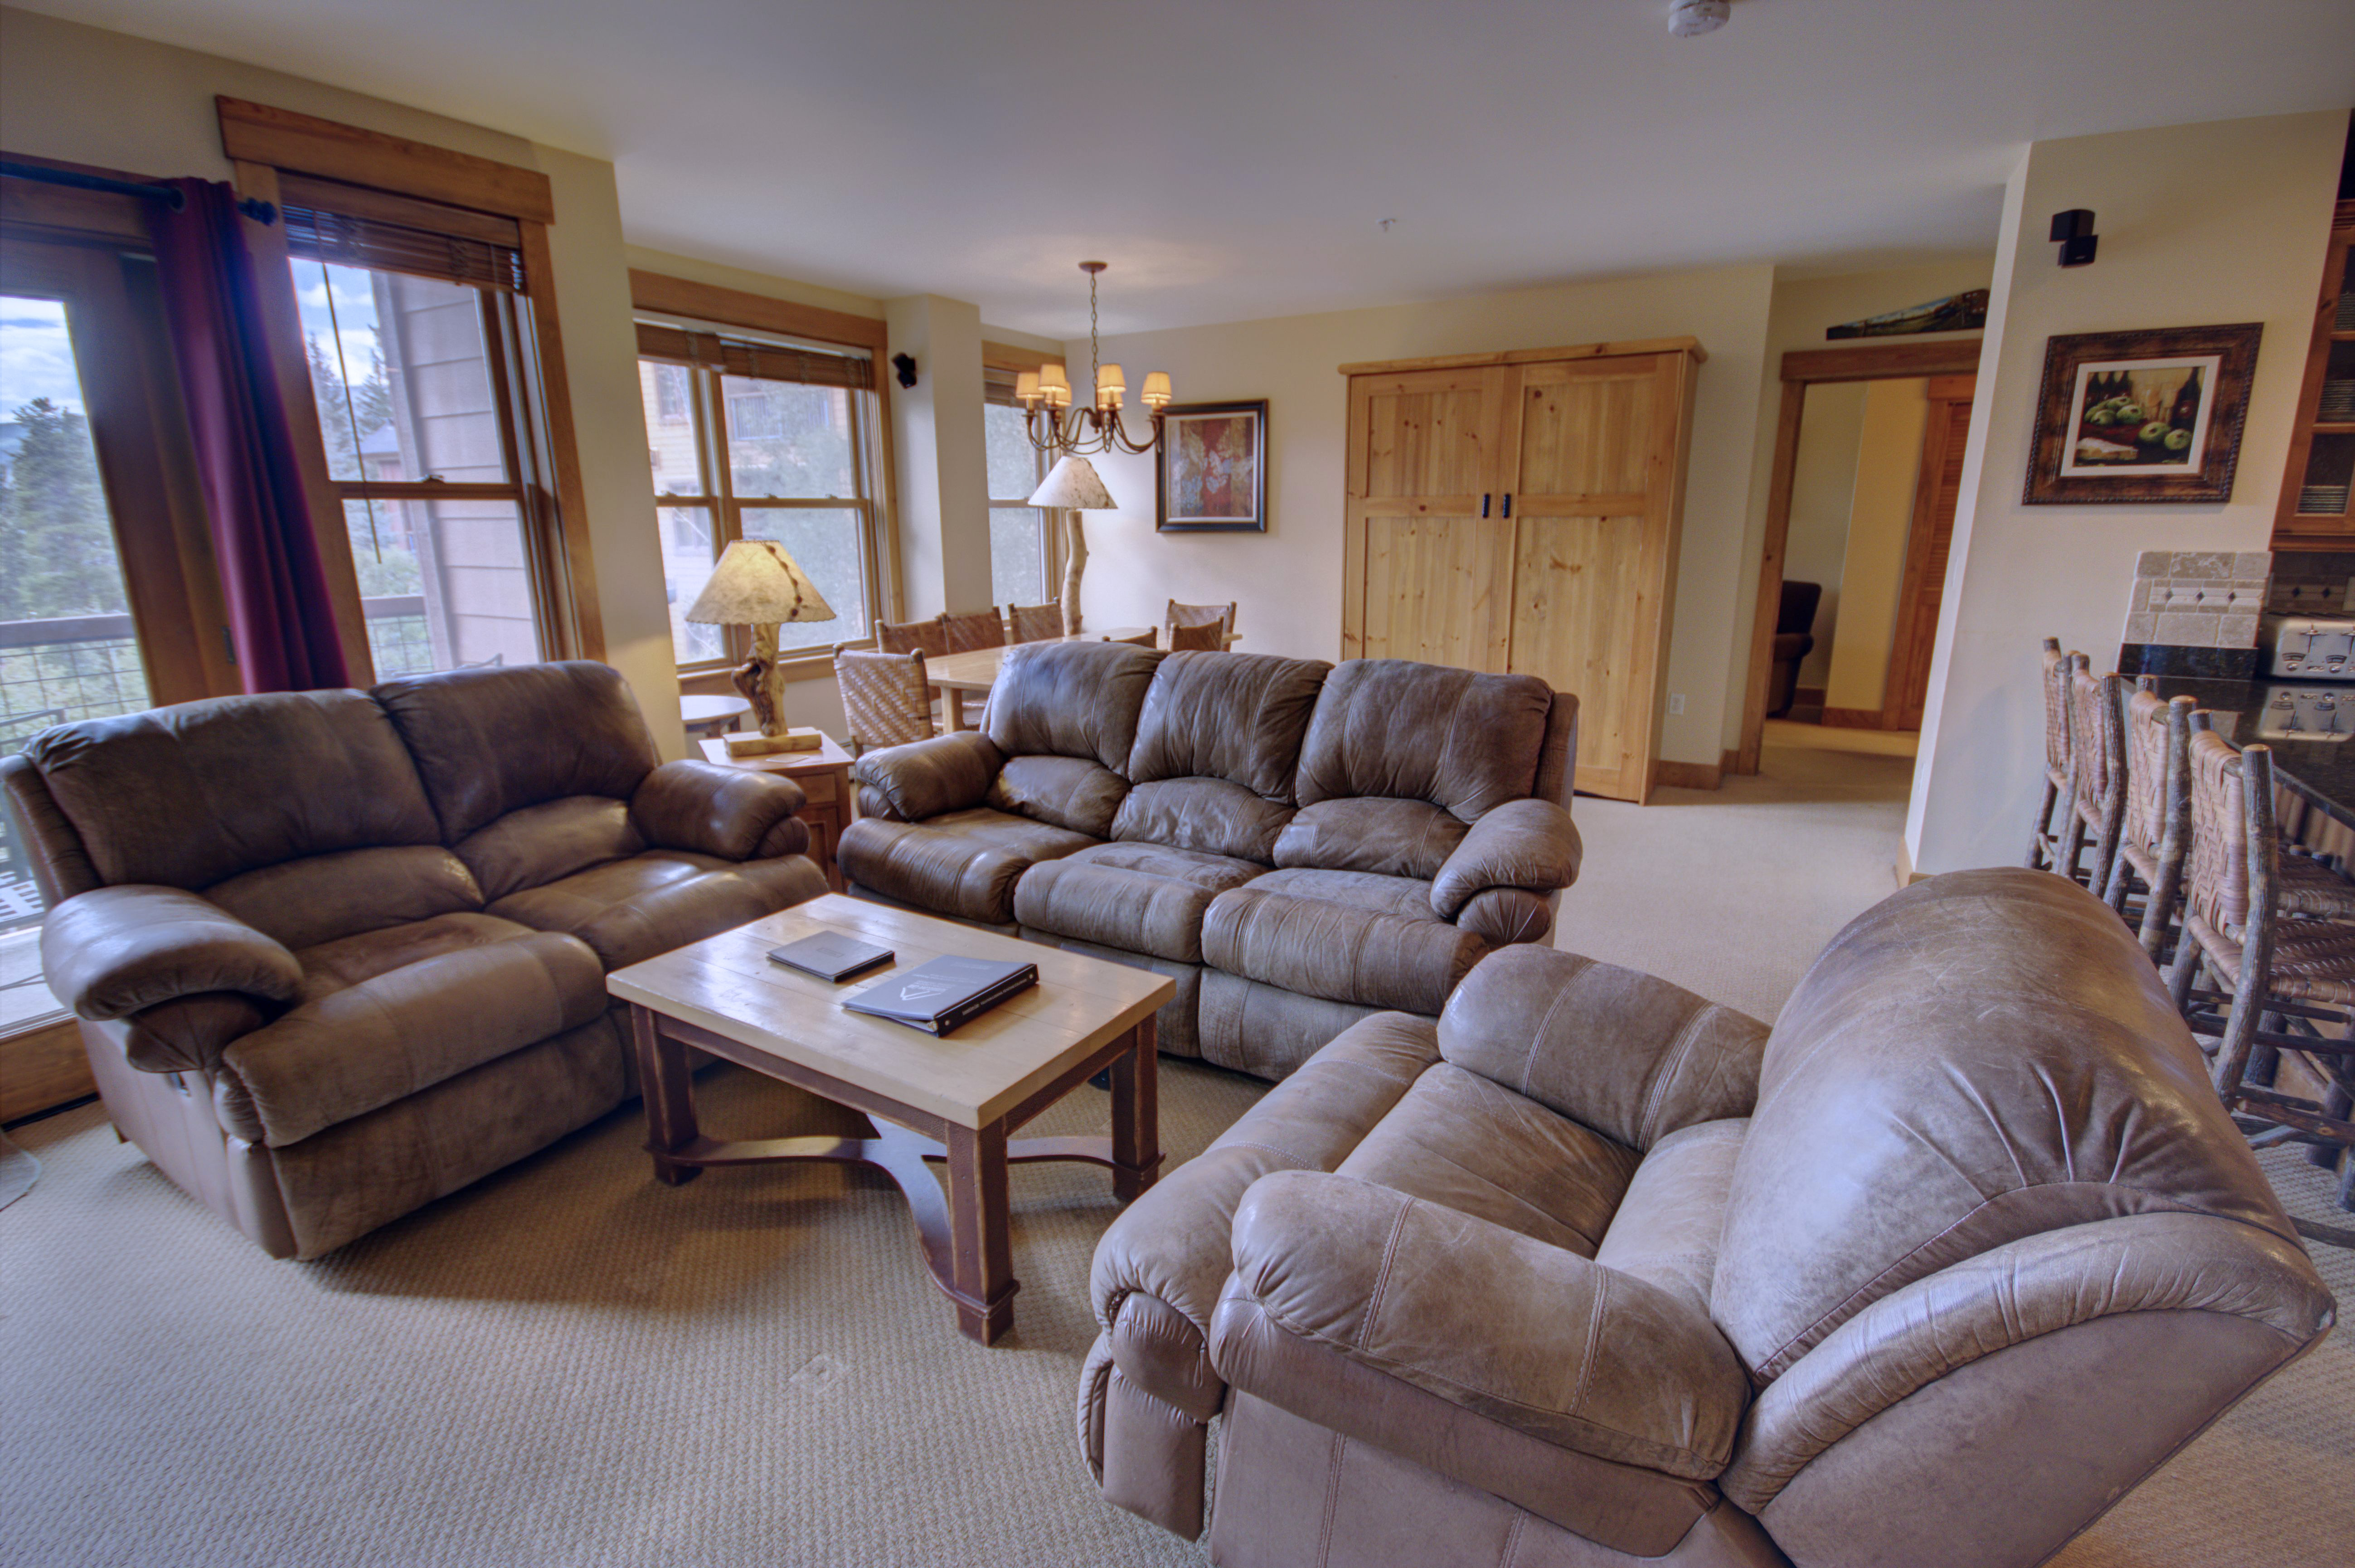 The living room perfect for entertaining family and guest